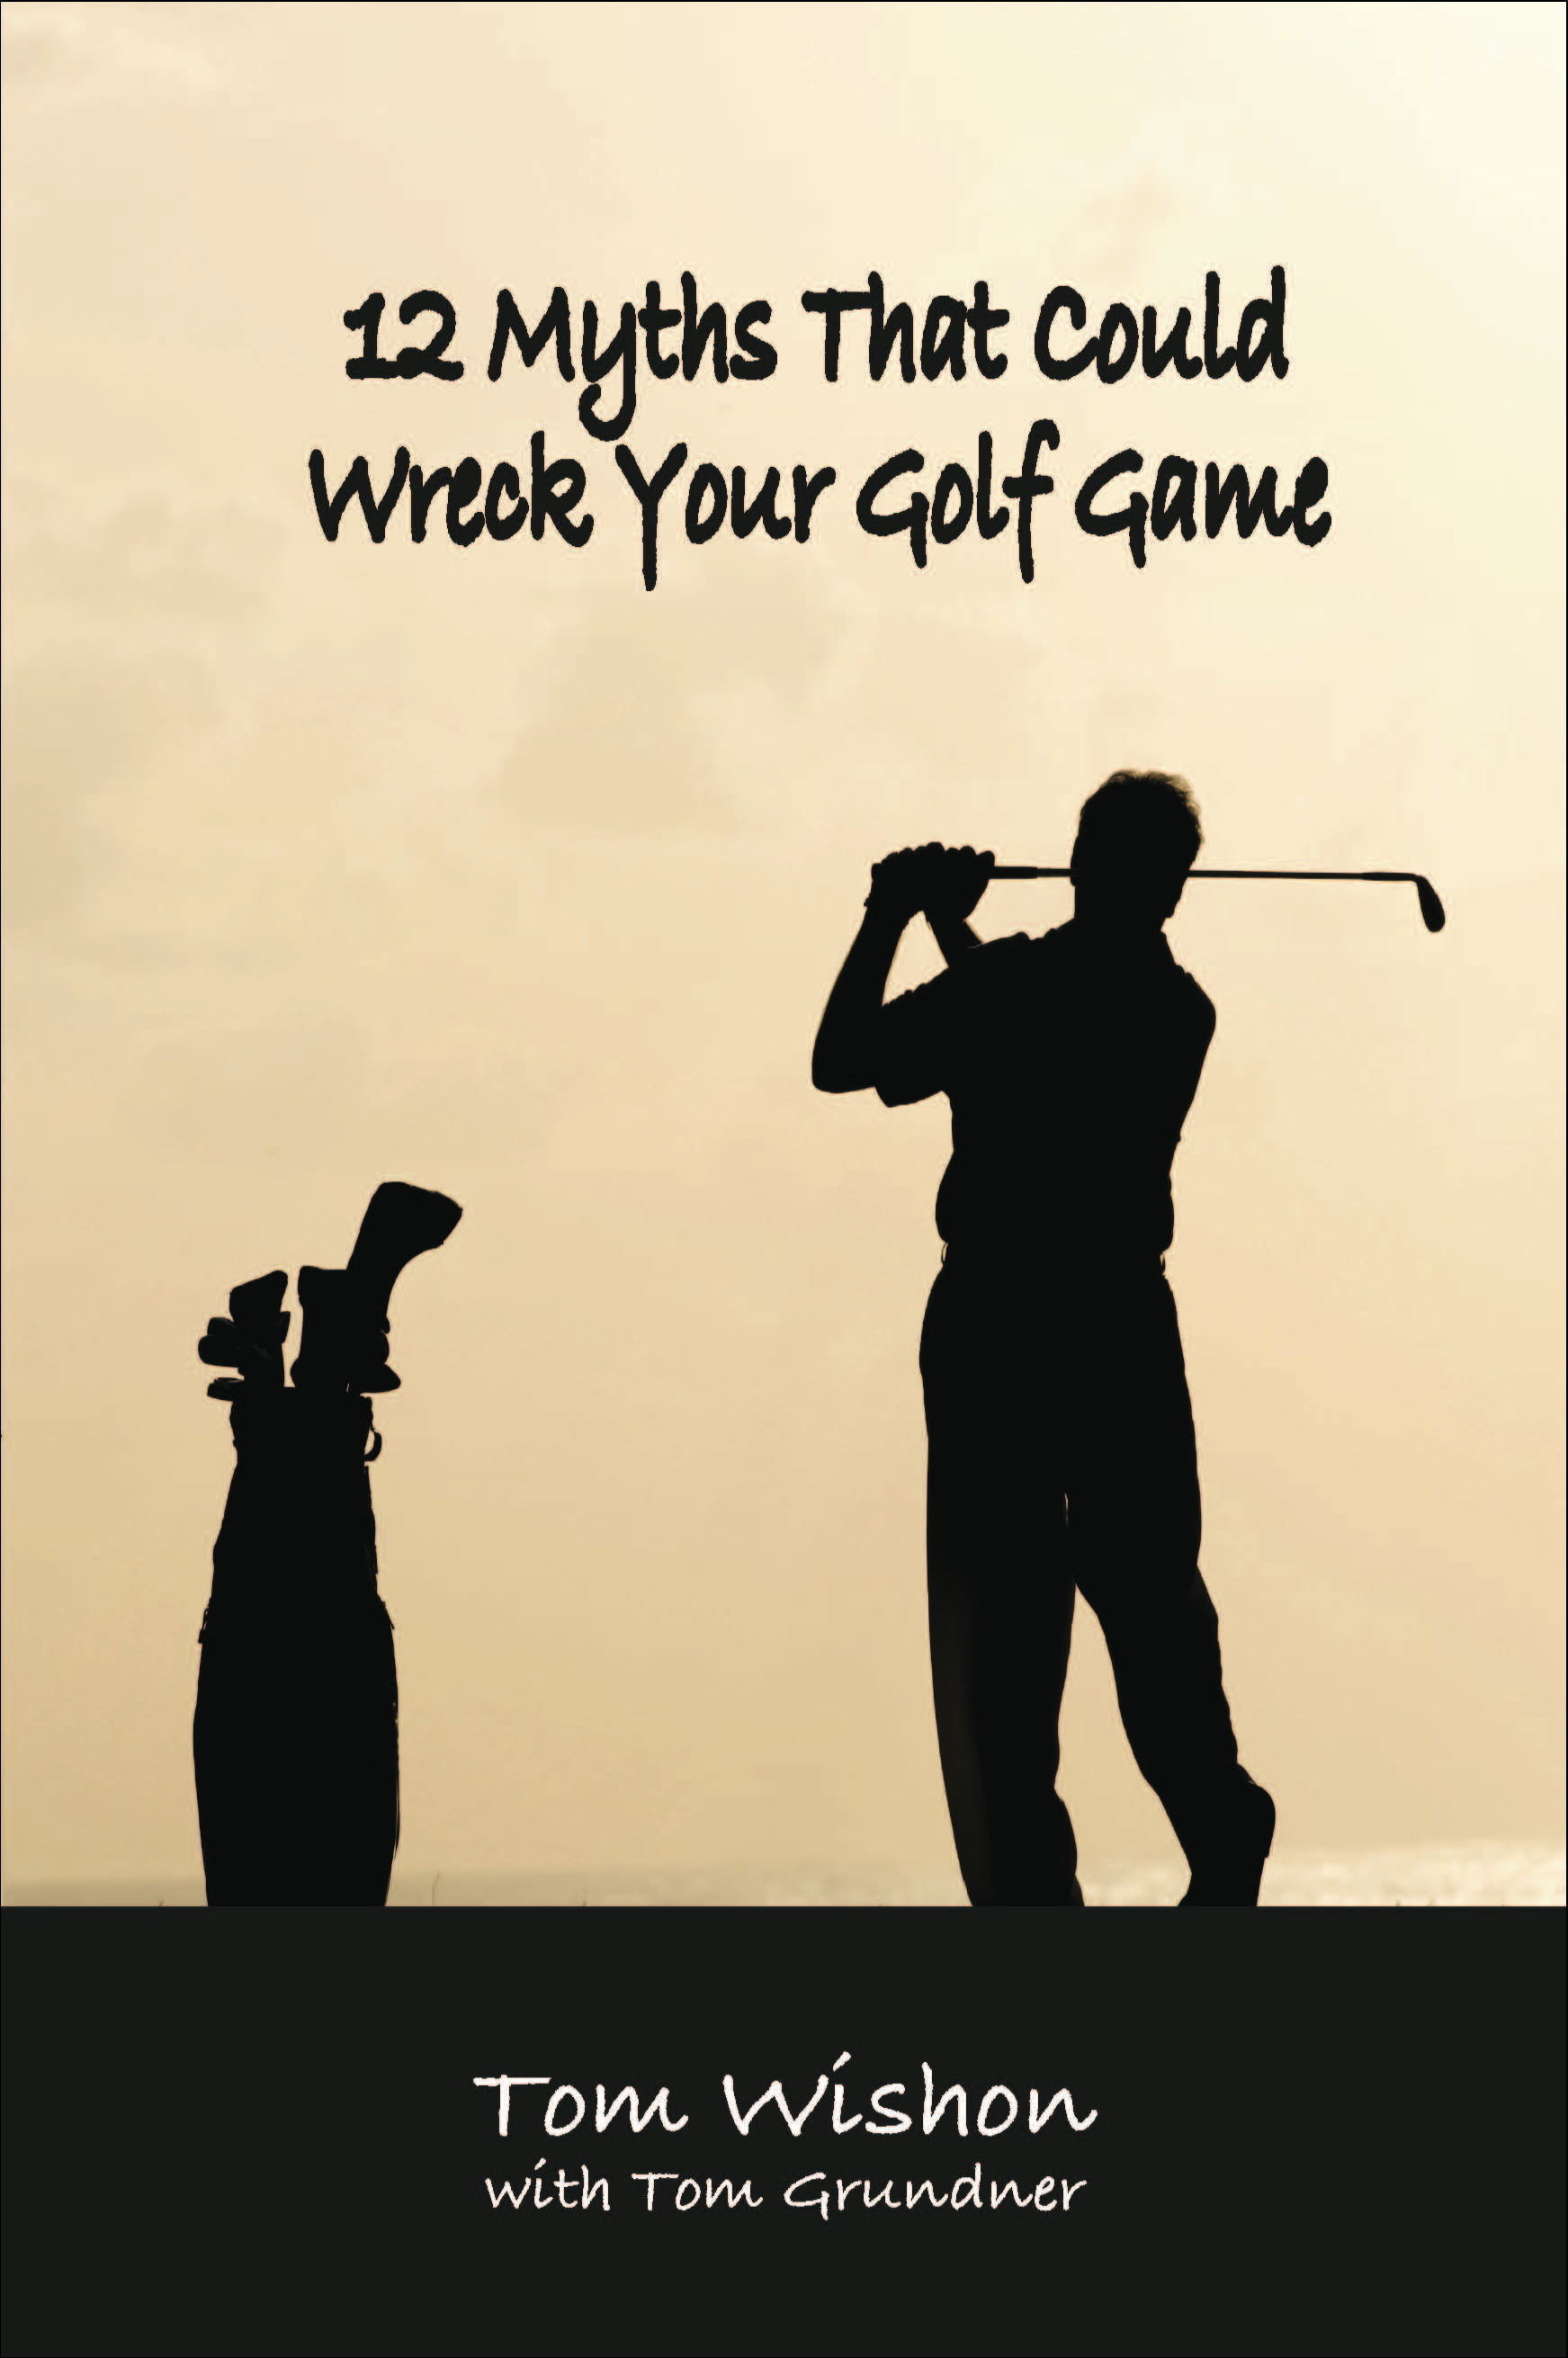 12 Myths That Could Wreck Your Golf Game By: Tom Wishon